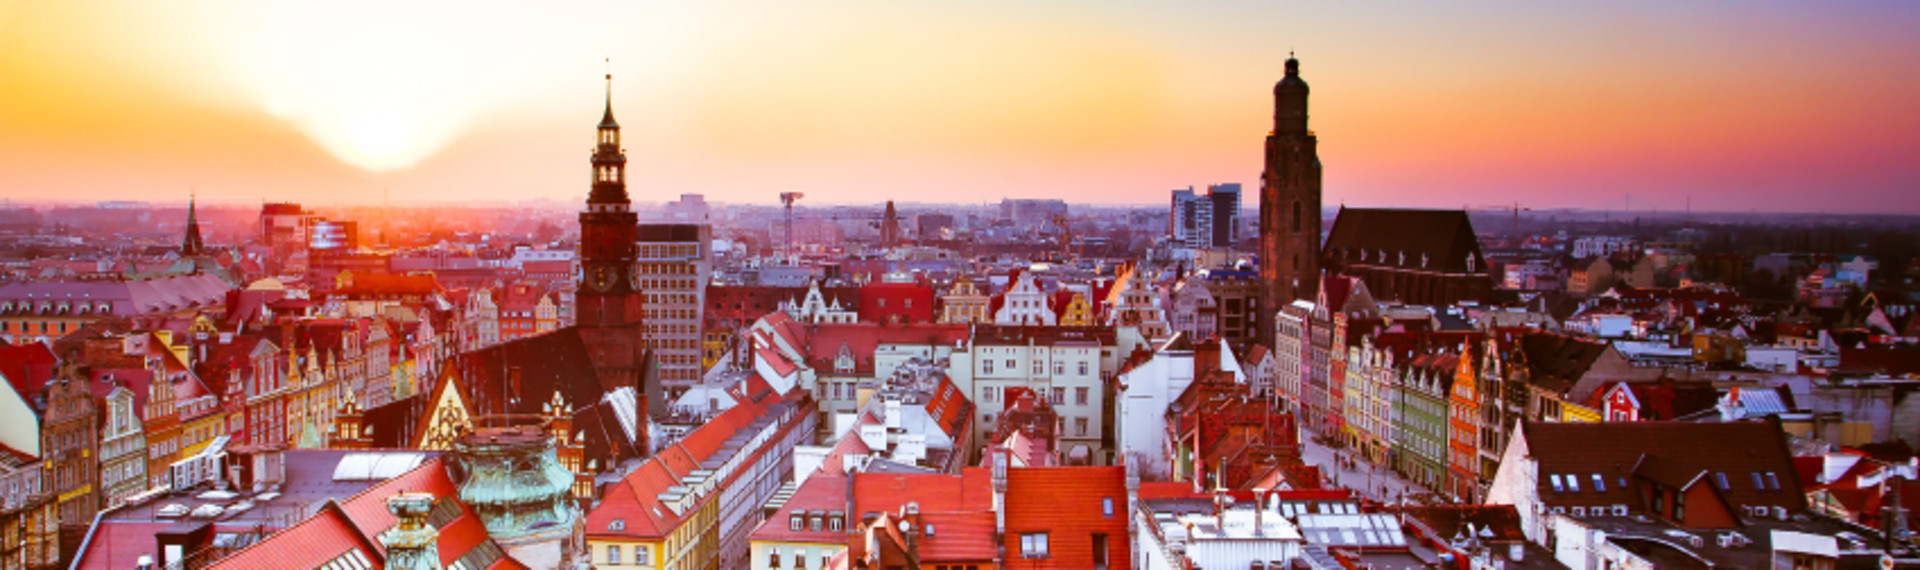 Wroclaw Sightbeering Tour image